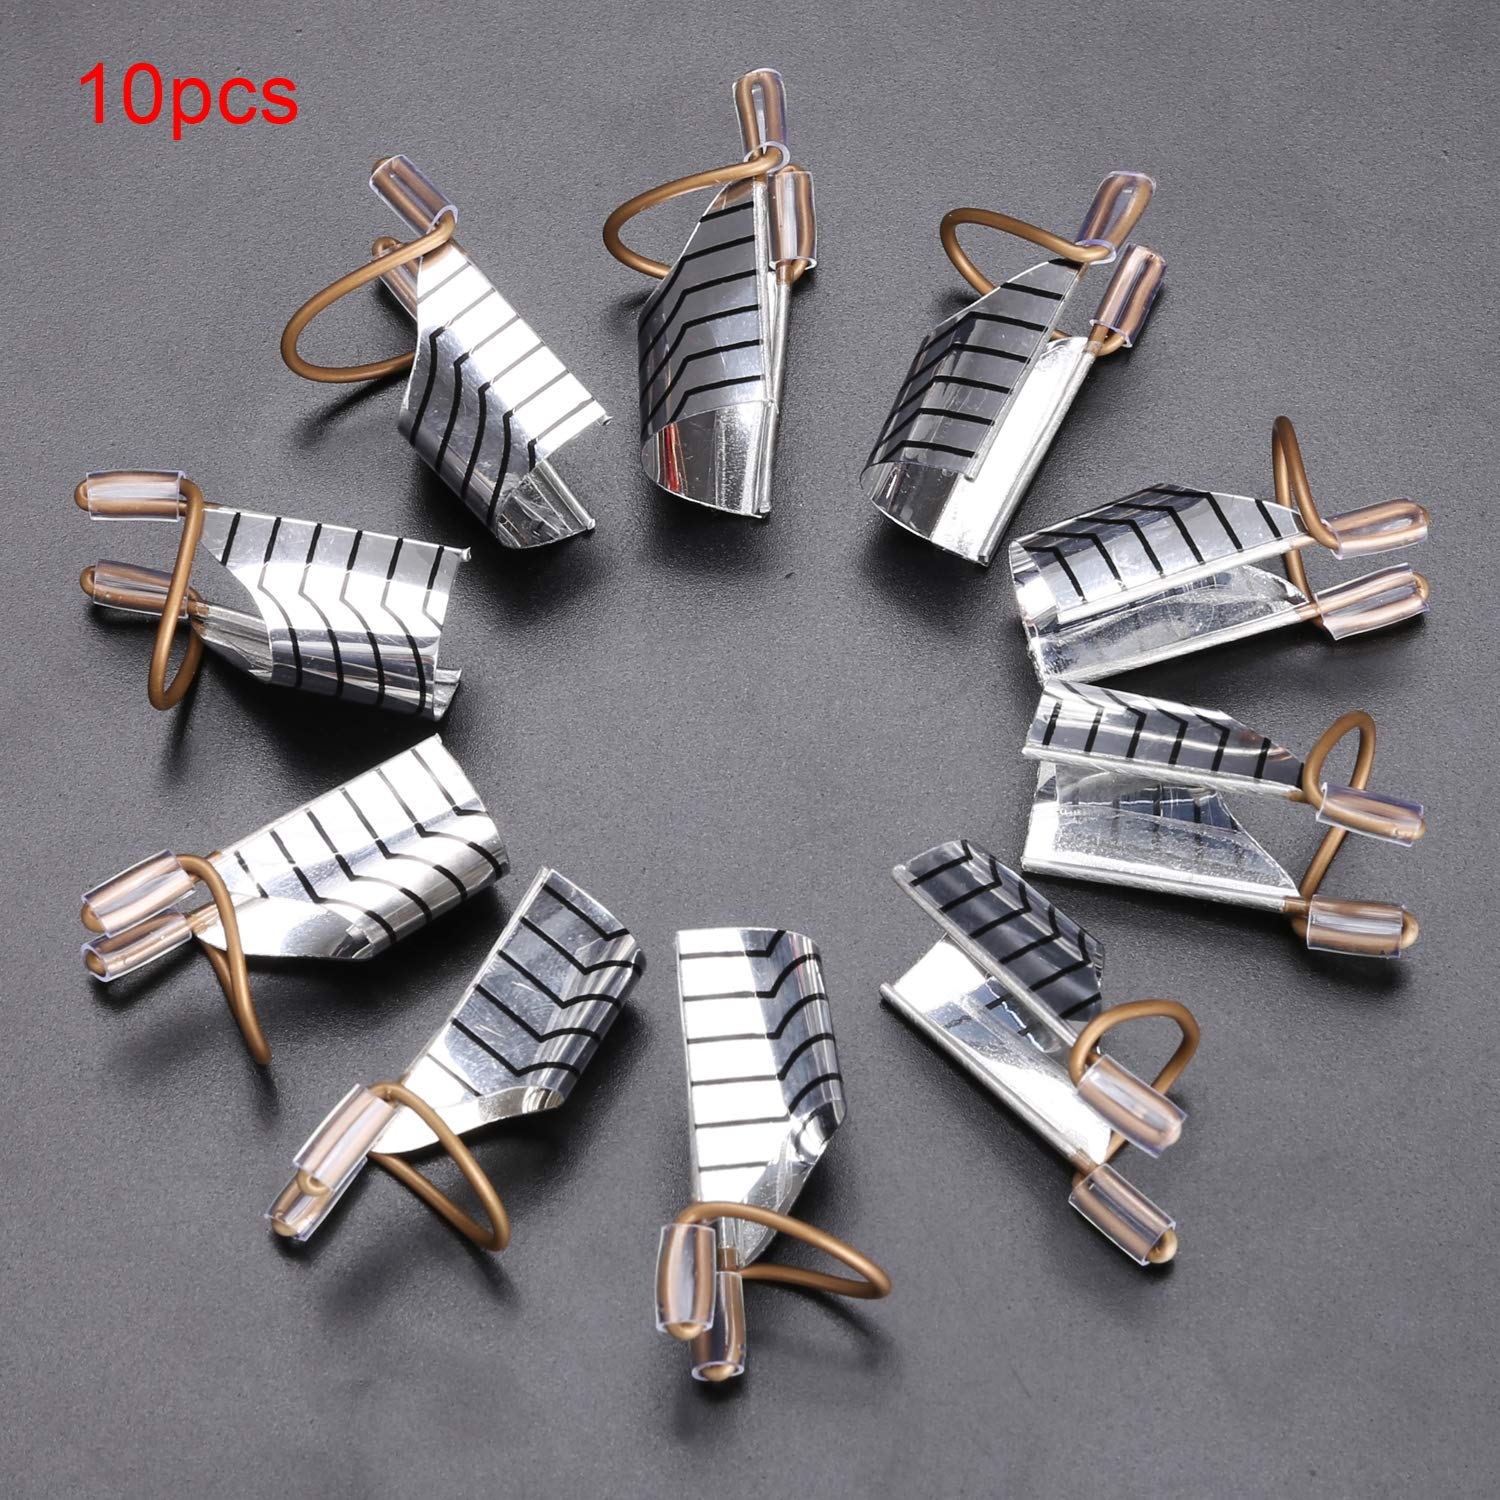 Kikole 10pcs Reusable Nail Art Extension Guide Forms UV Gel French Acrylic Tips Protector Tool